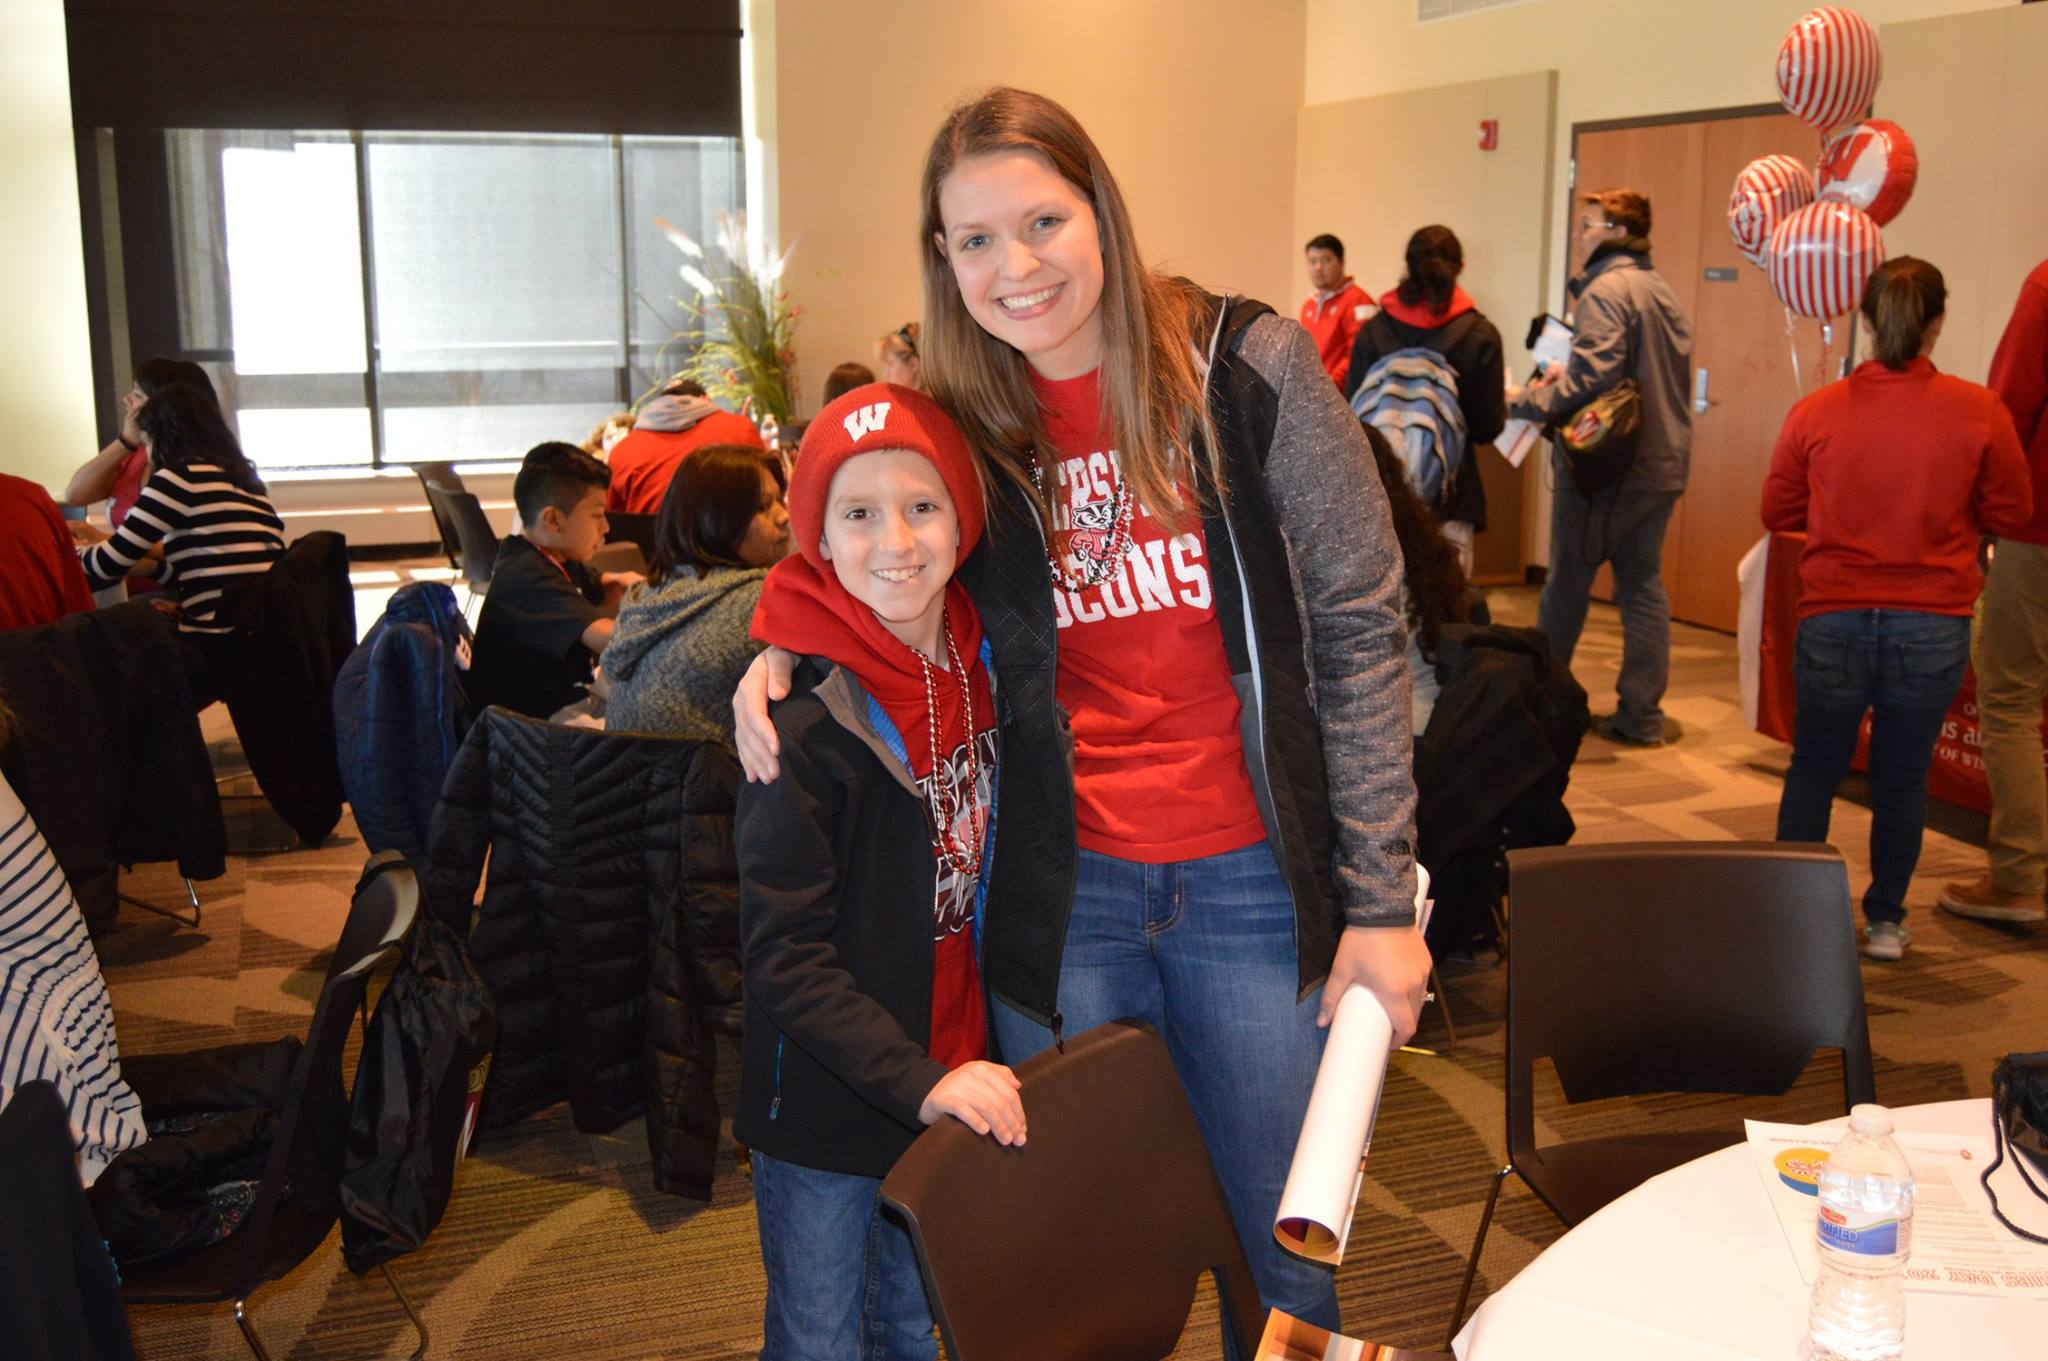 A student and her younger brother smile for the camera during a Sib's Day event.